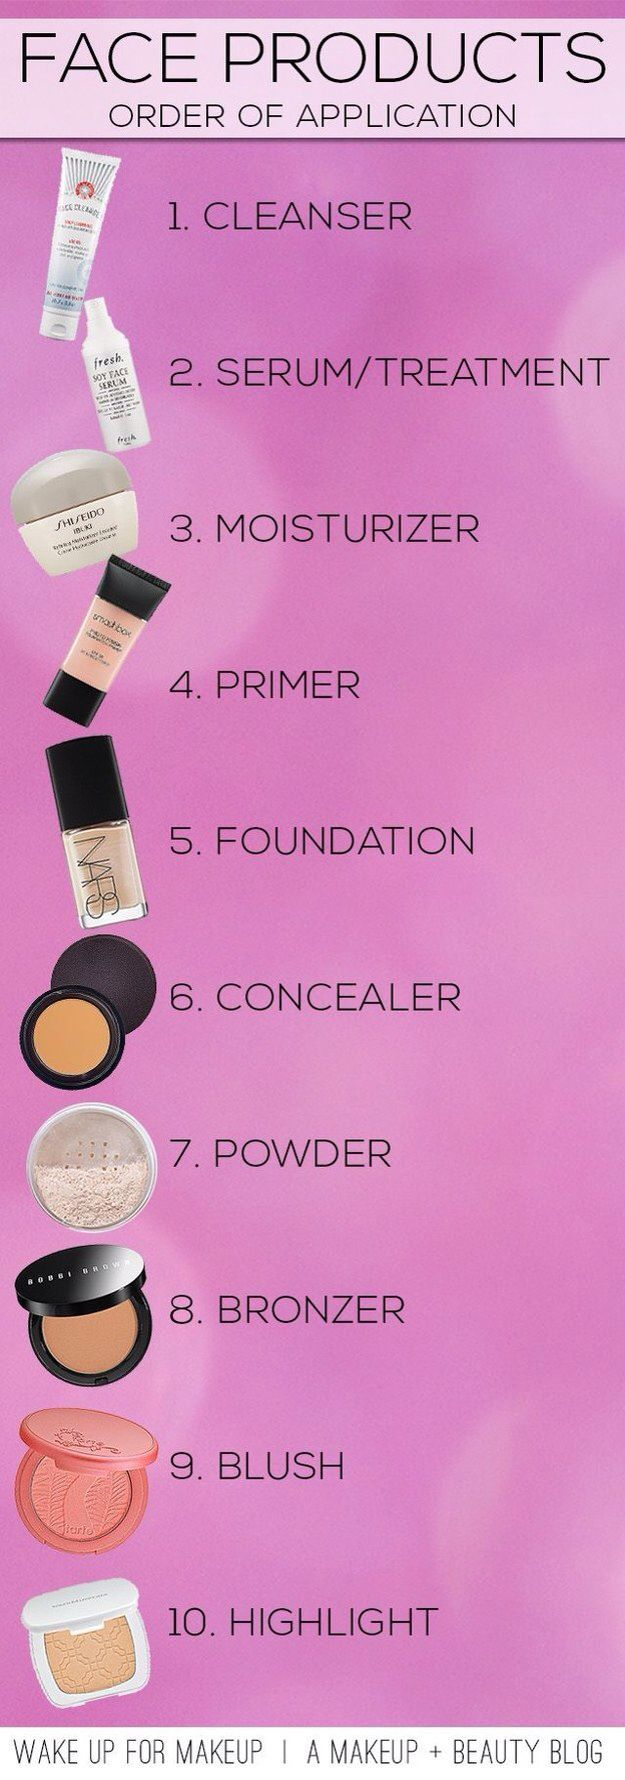 Order of putting makeup on